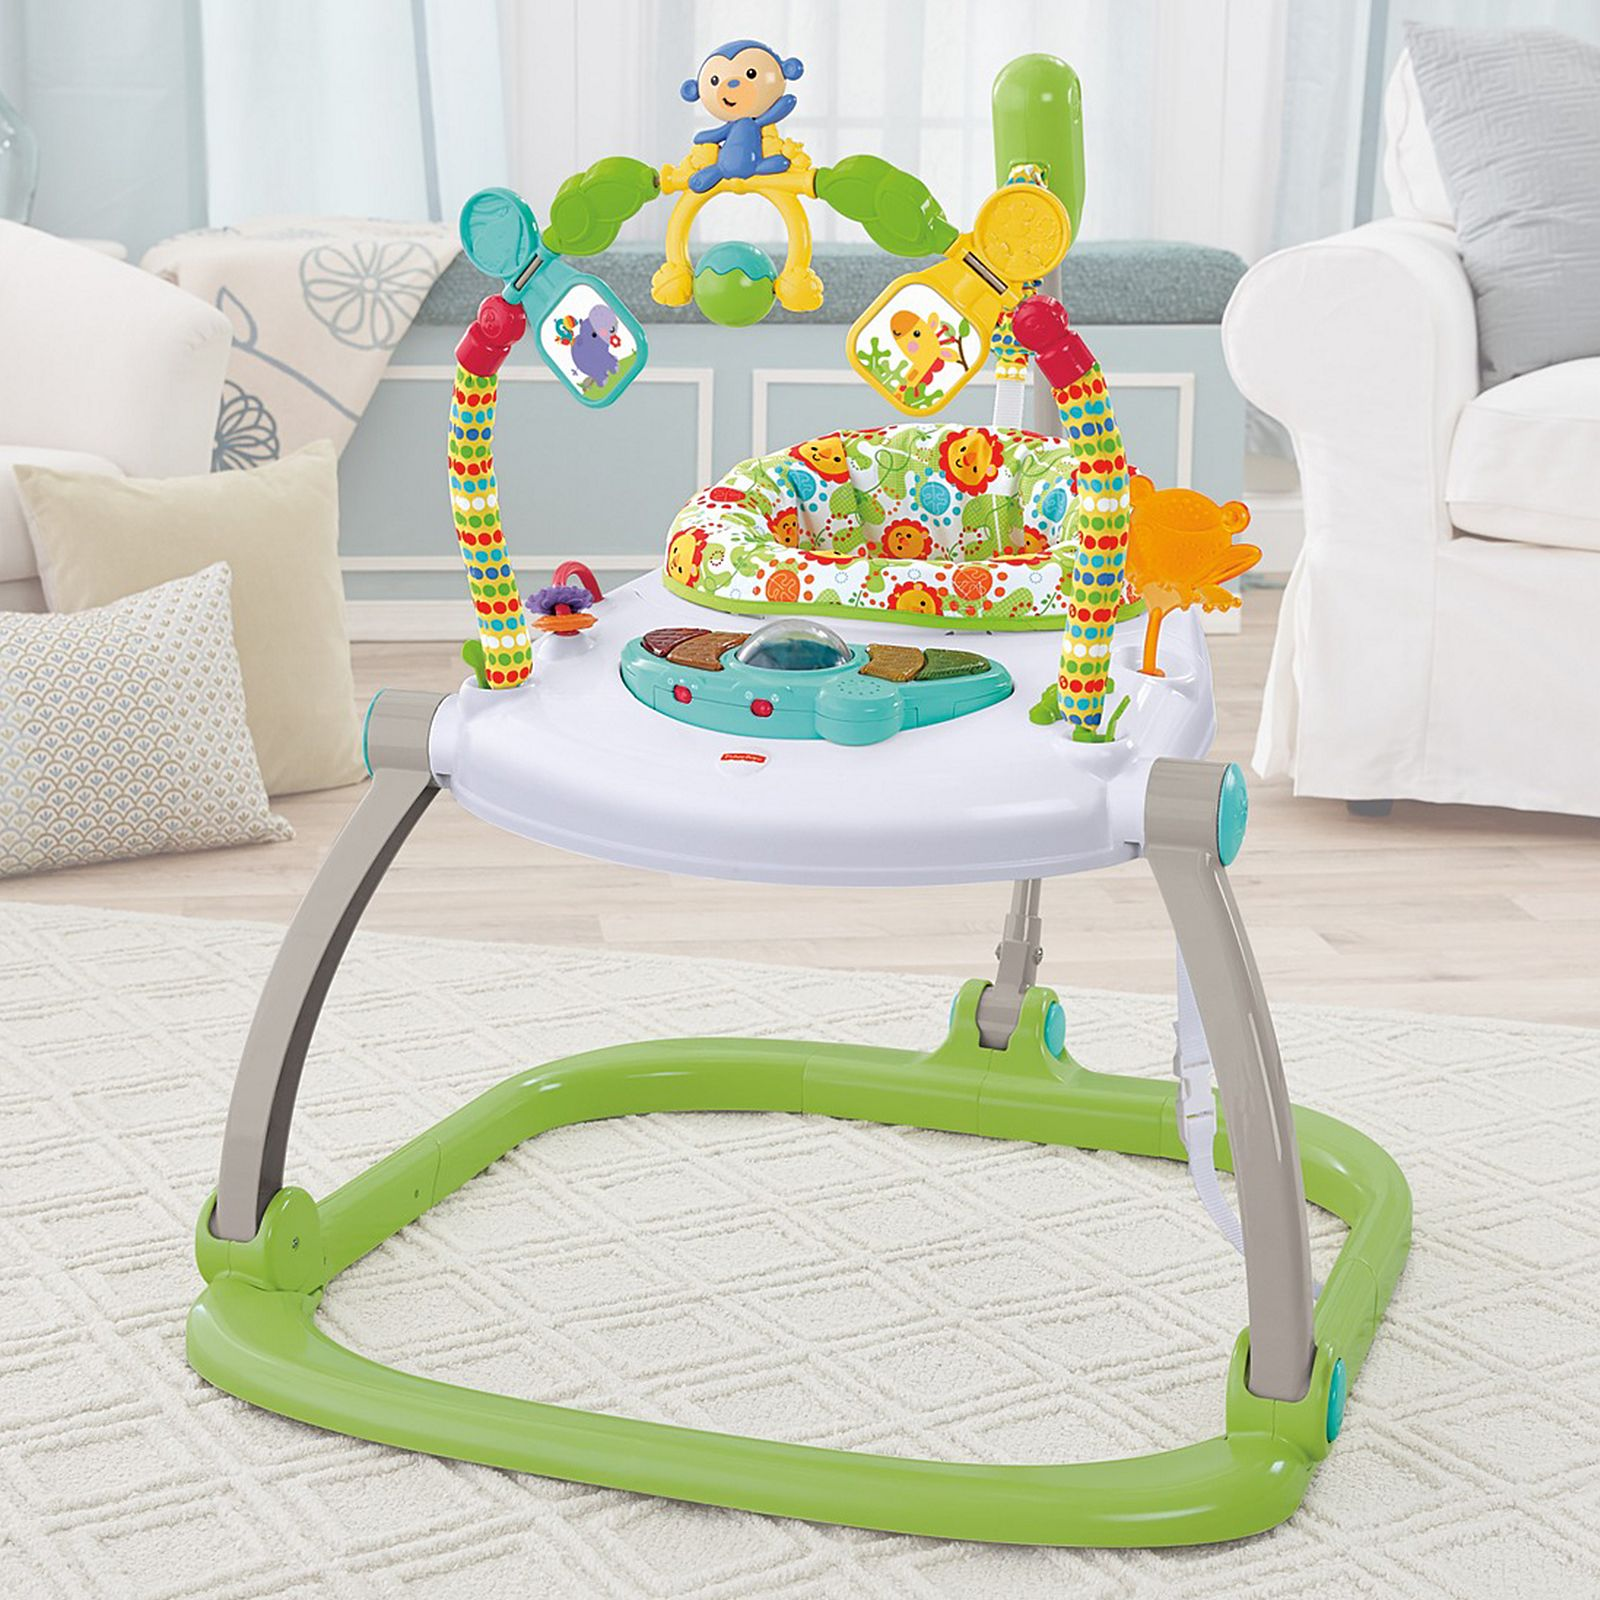 Toys Fisher Price Rainforest Friends Space Saver Jumperoo